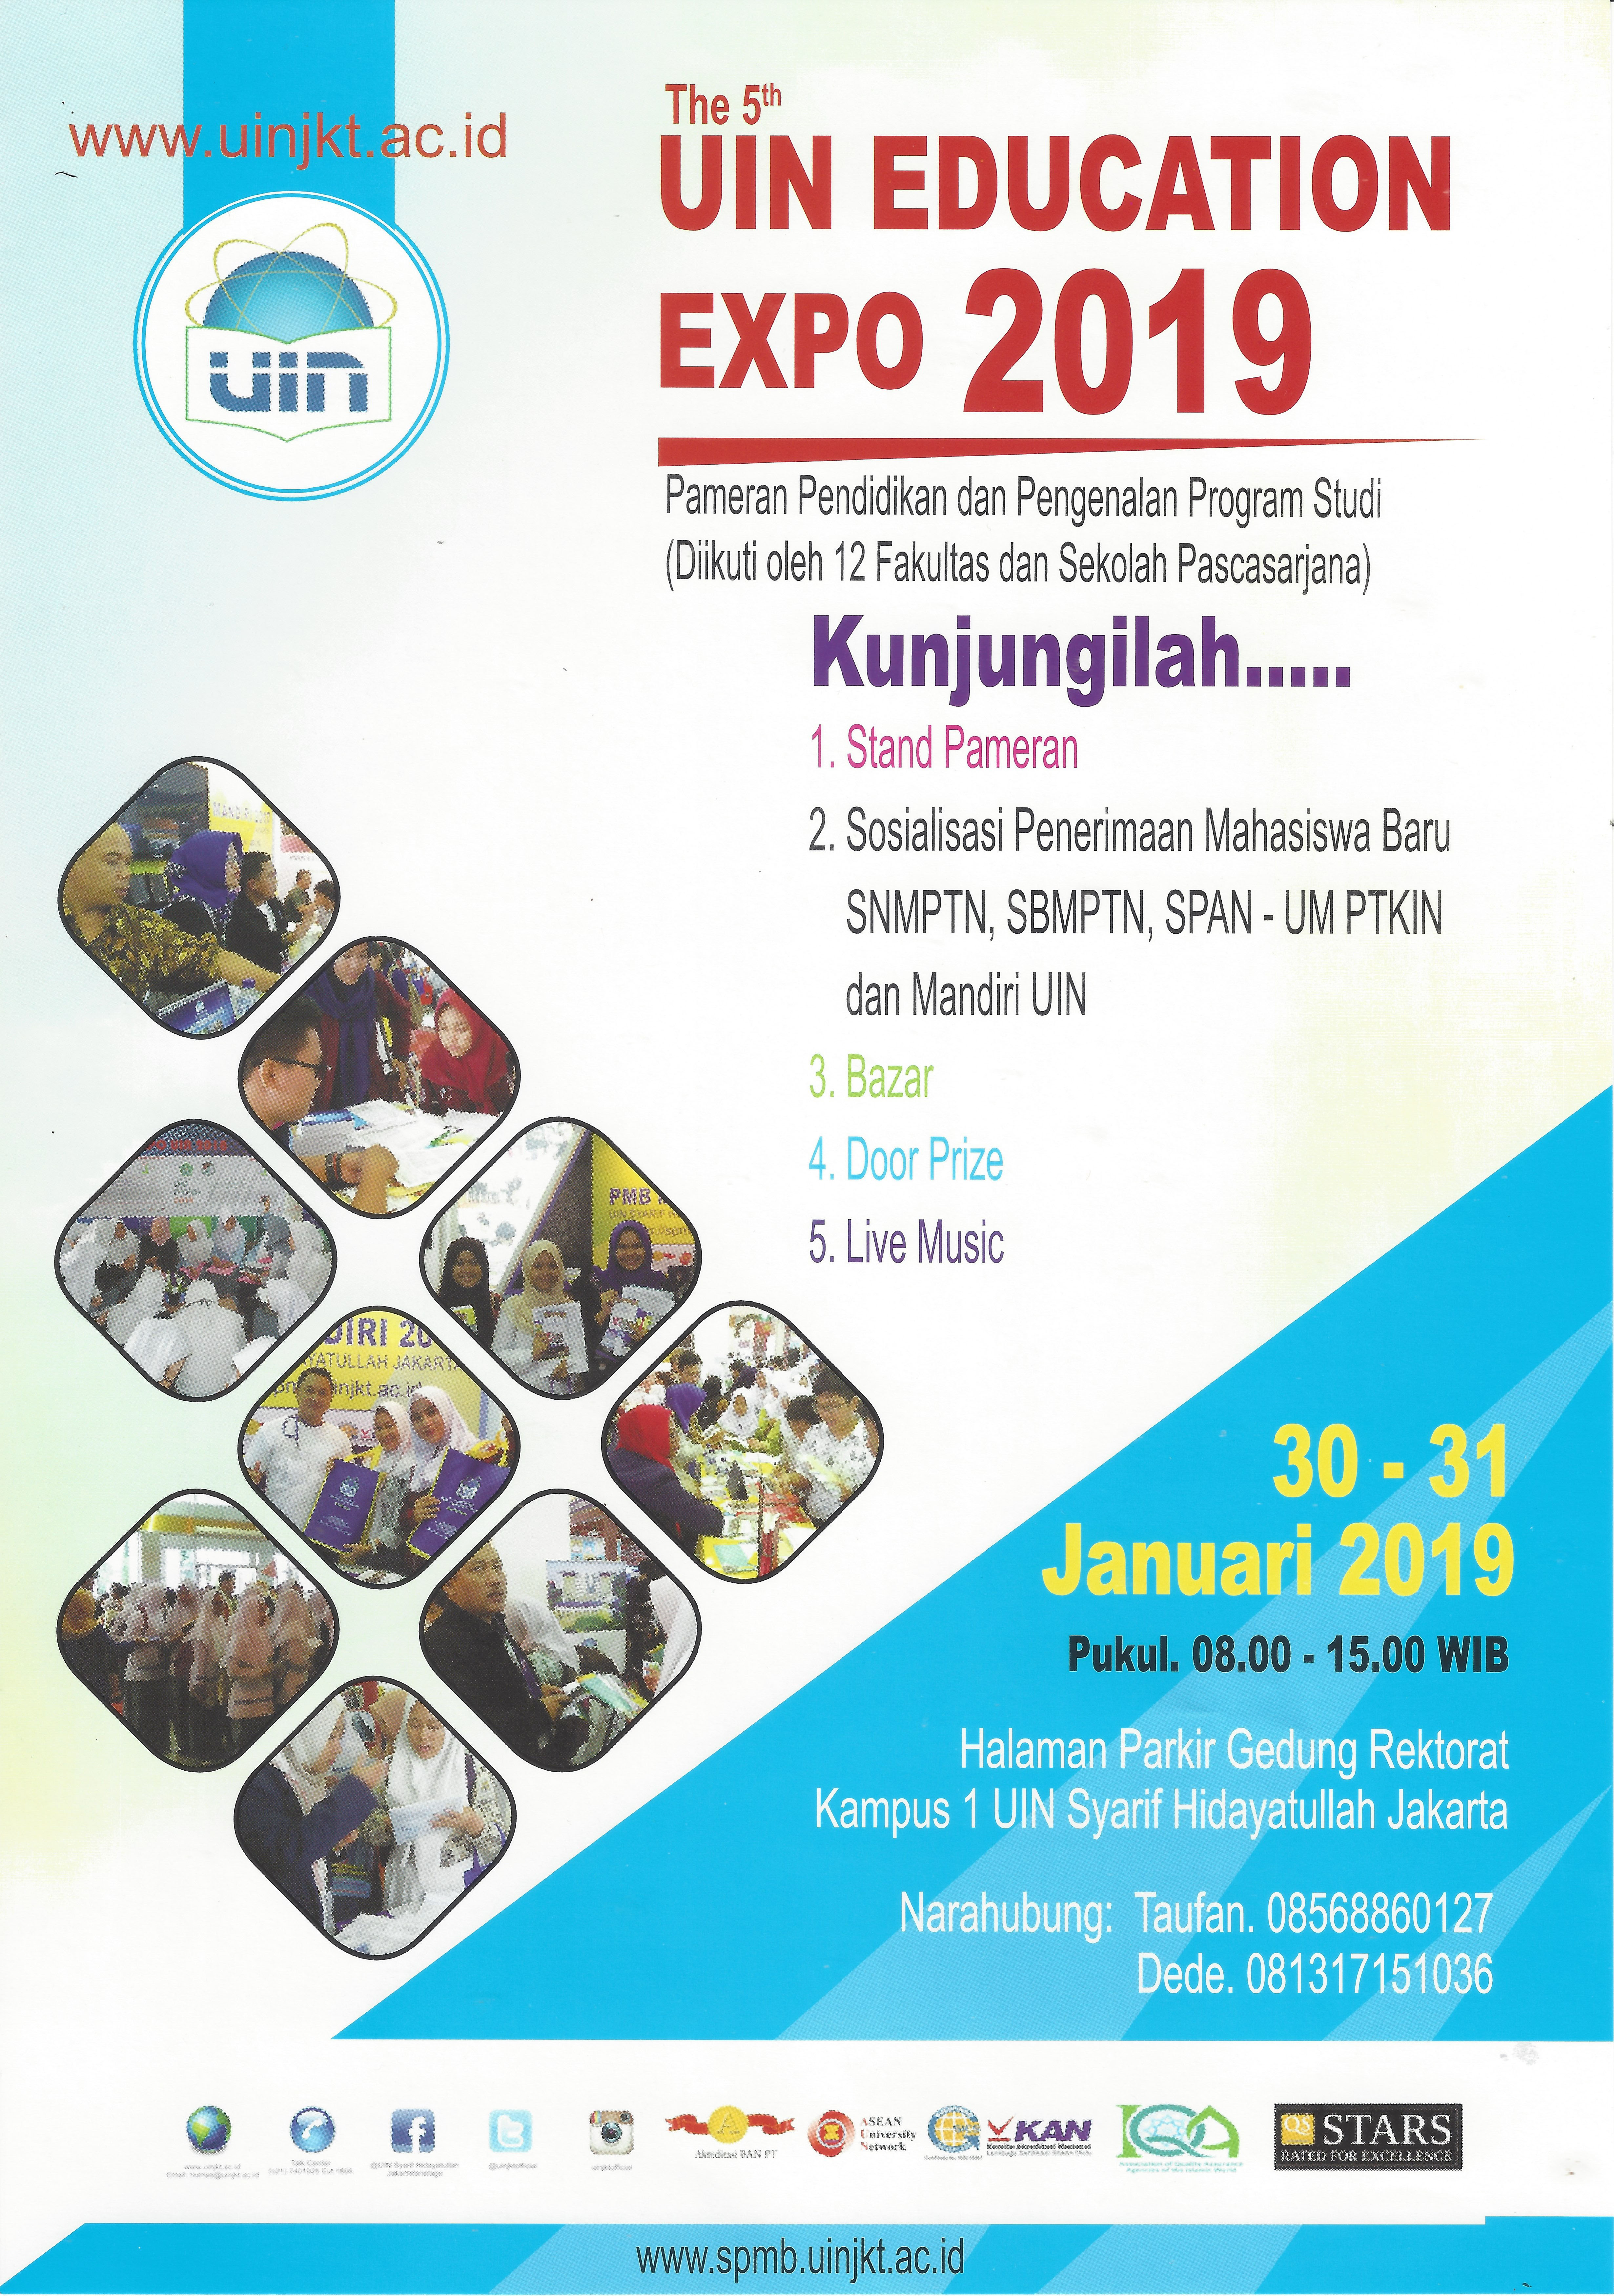 UIN EDUCATION EXPO 2019